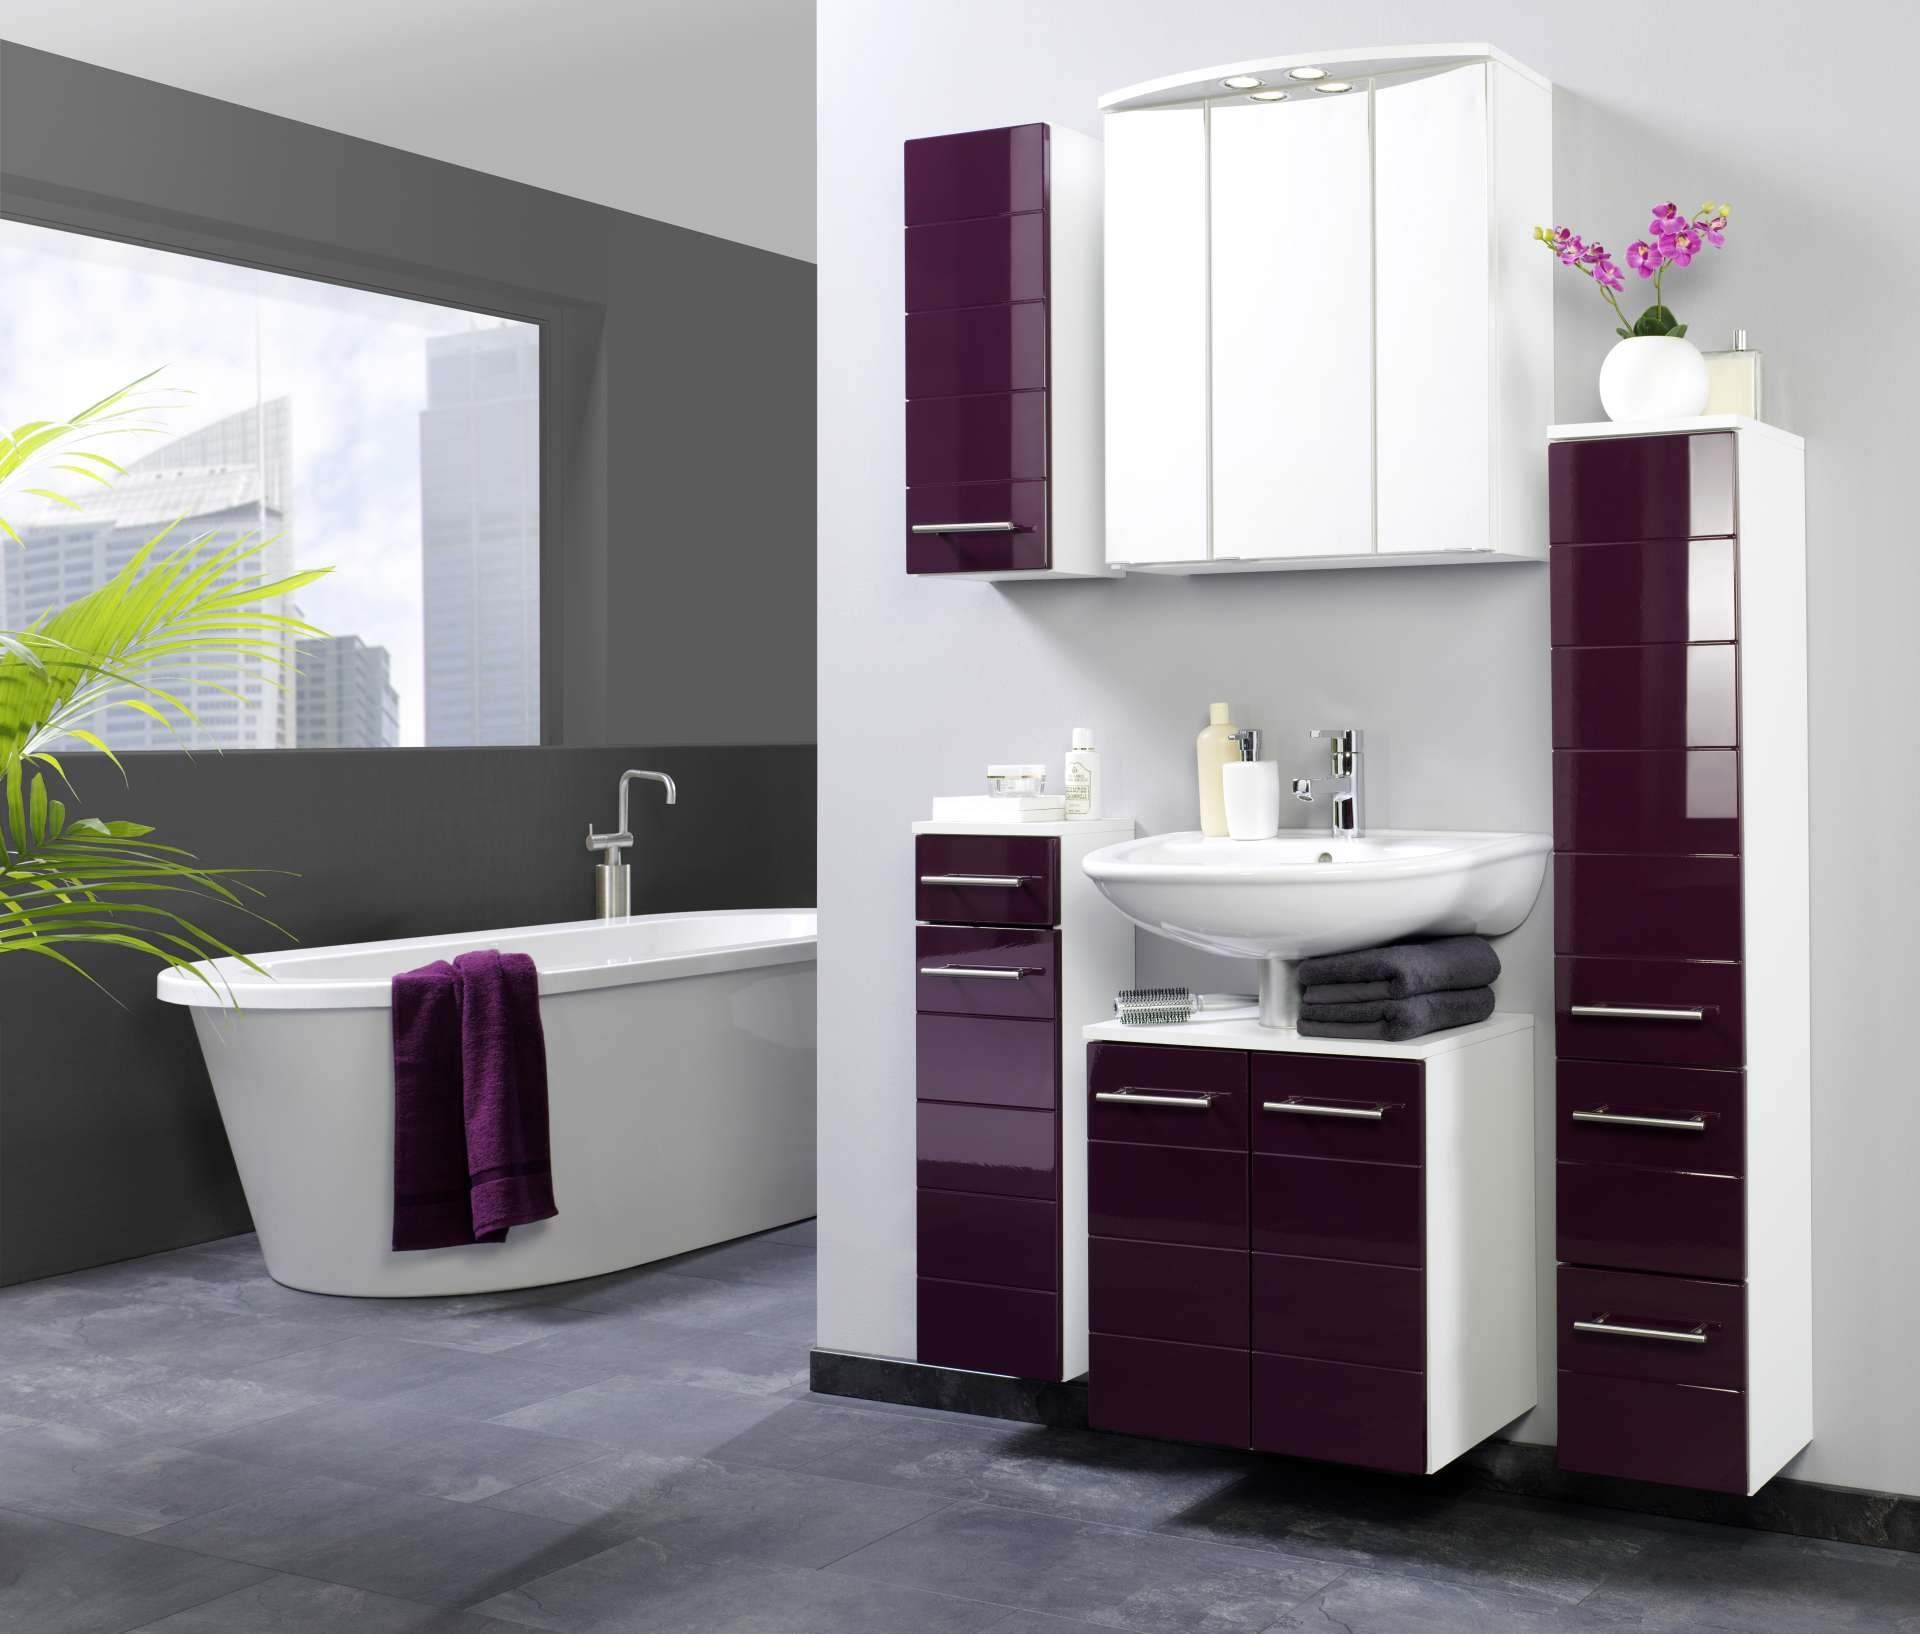 bad midischrank rimini 1 t rig 2 schublade 25 cm breit hochglanz aubergine bad bad. Black Bedroom Furniture Sets. Home Design Ideas